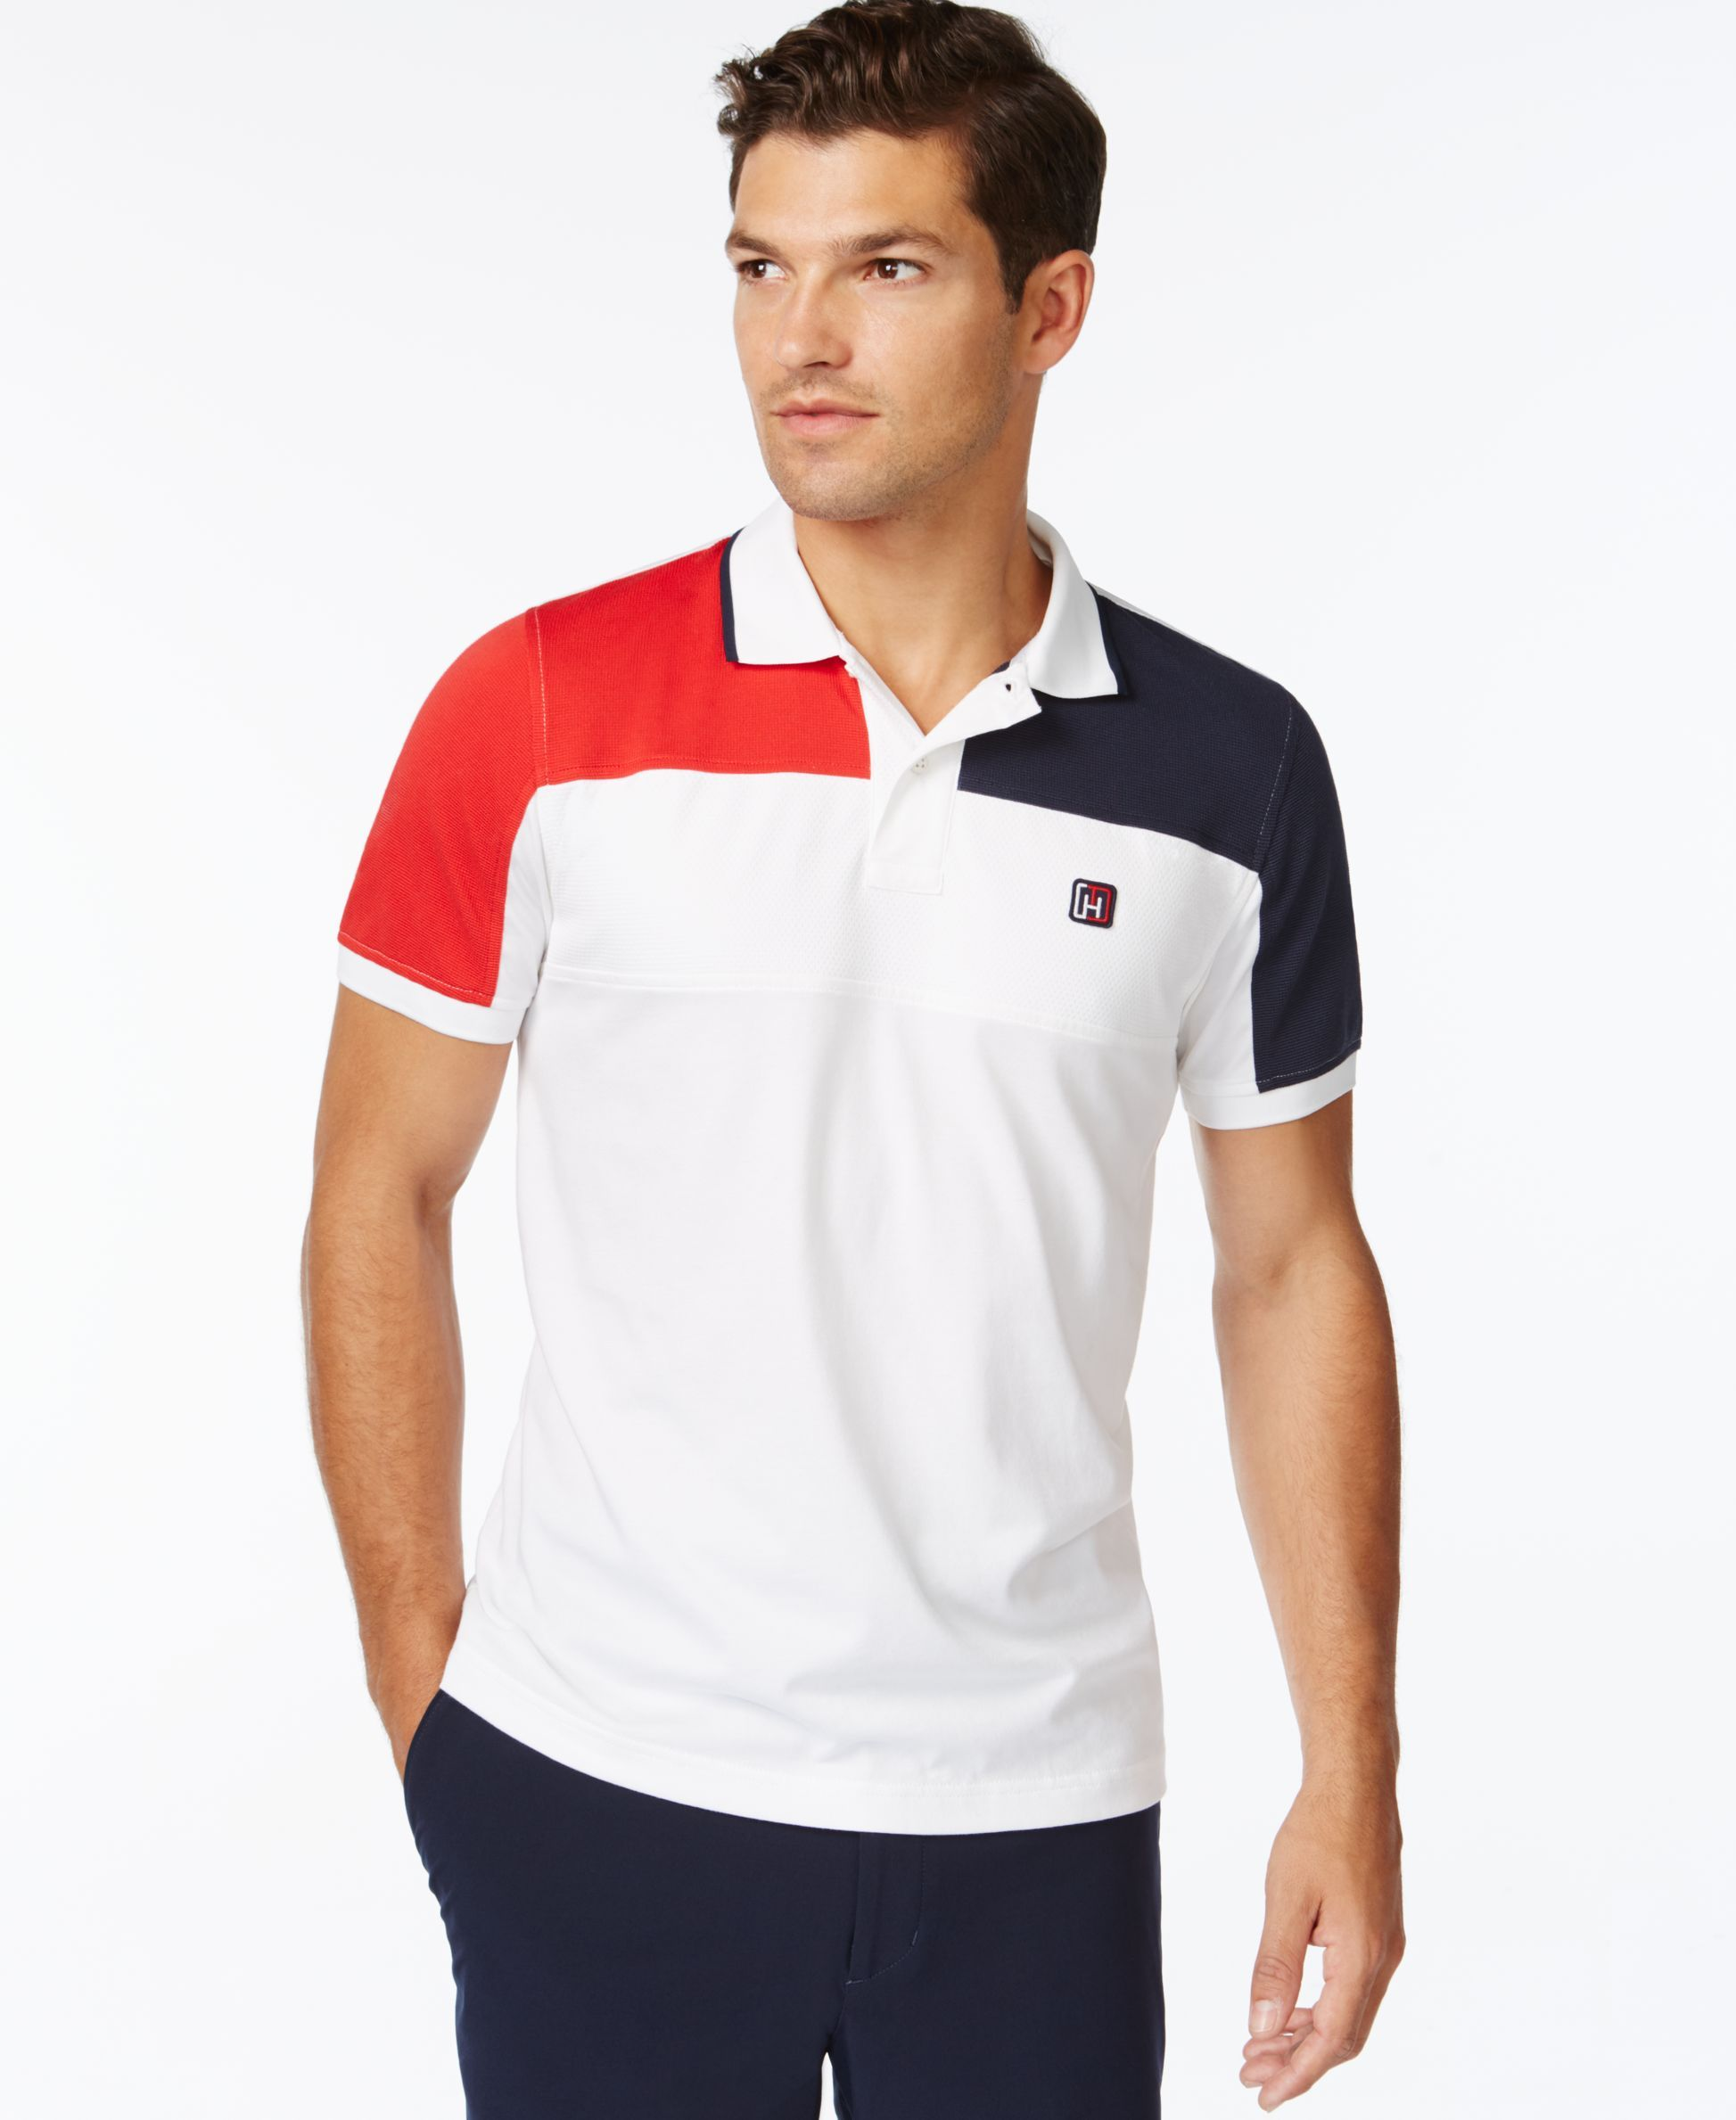 0c670481 Tommy Hilfiger Upton Athletic Polo Shirt | clothing服装 in 2019 ...